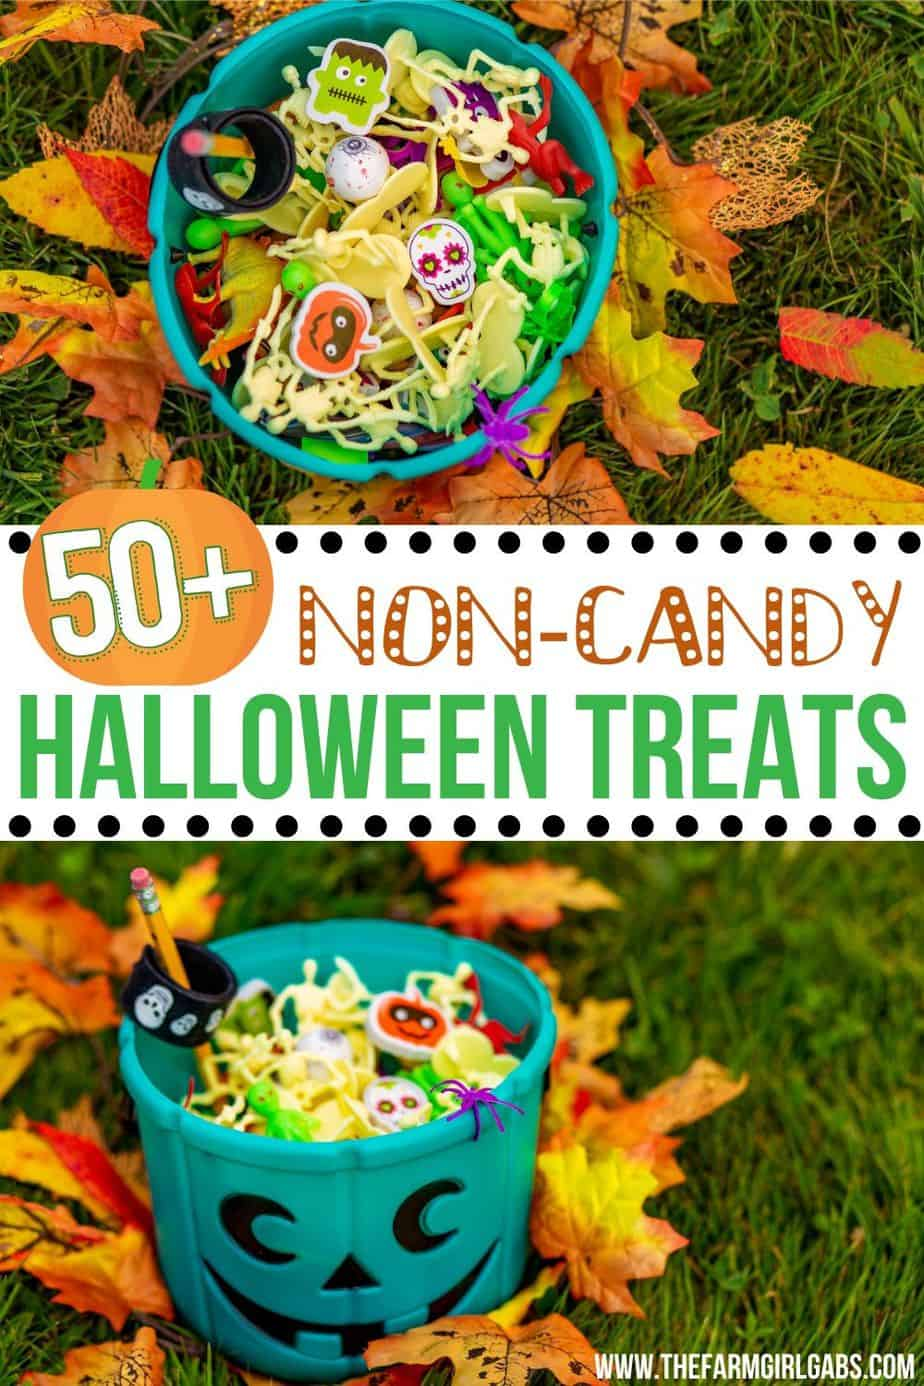 Skip the candy this Halloween! Here are some Non-Candy Halloween Treats you can hand out to trick or treaters instead. #Halloweentreats #noncandytreats #tealpumpkinproject